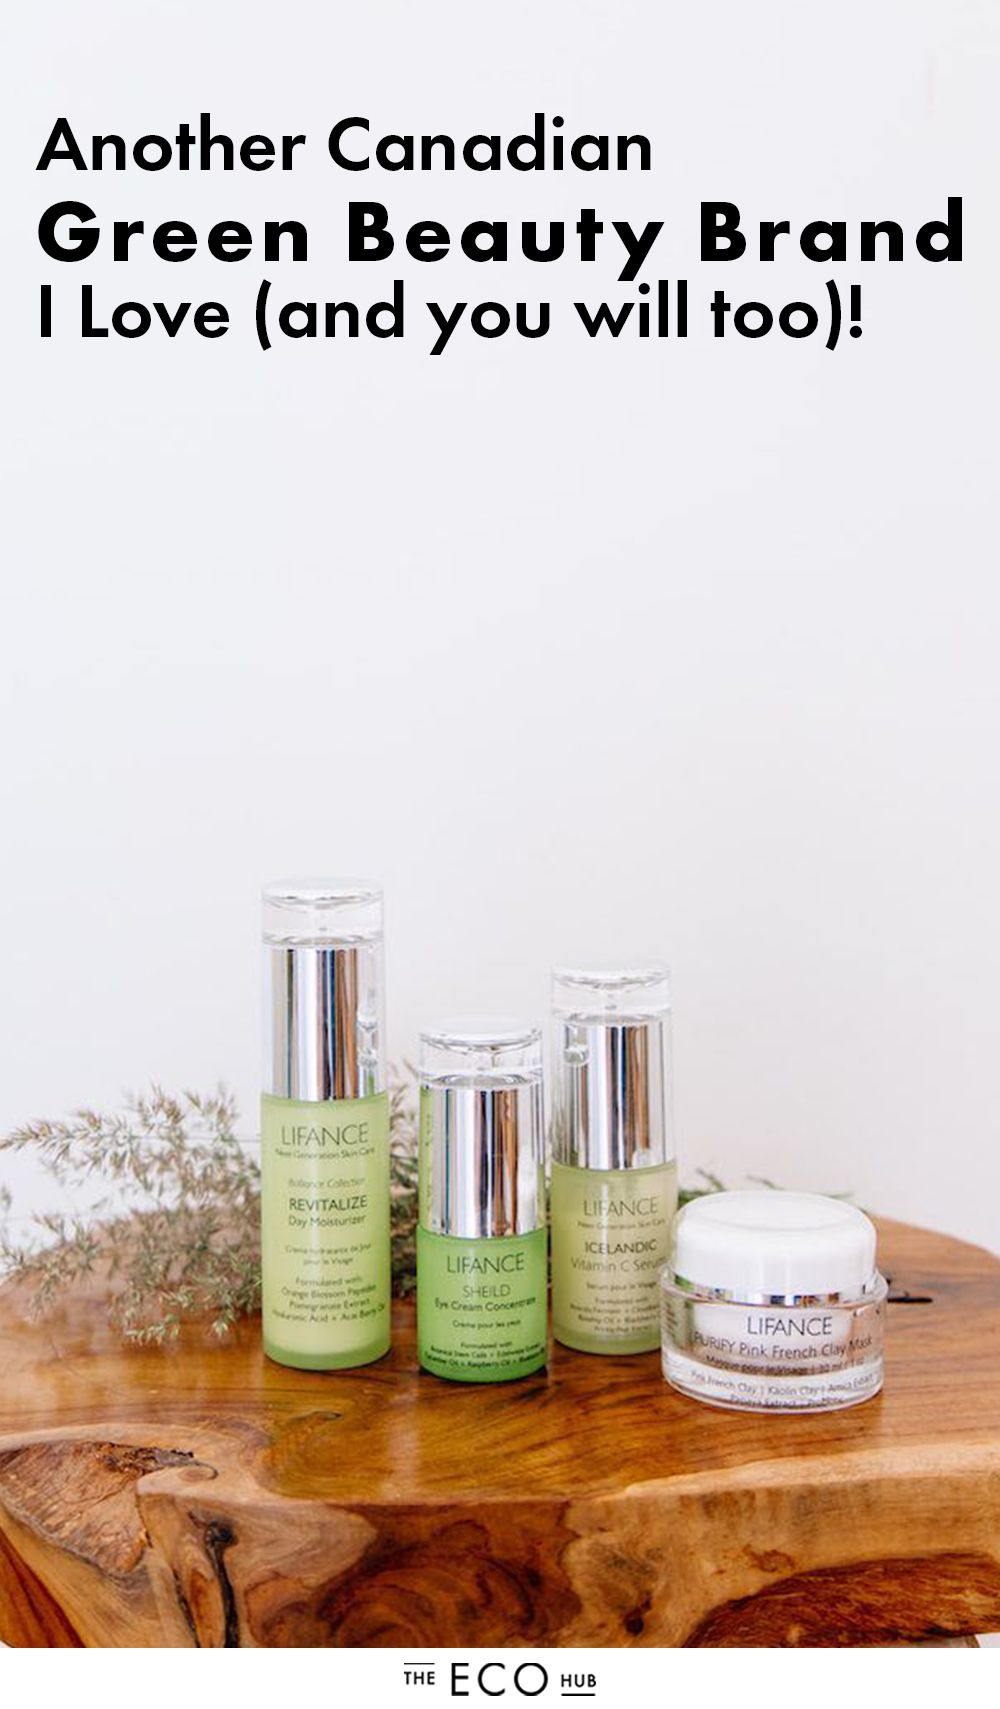 Another Canadian Green Beauty Brand I Simply Love! (and